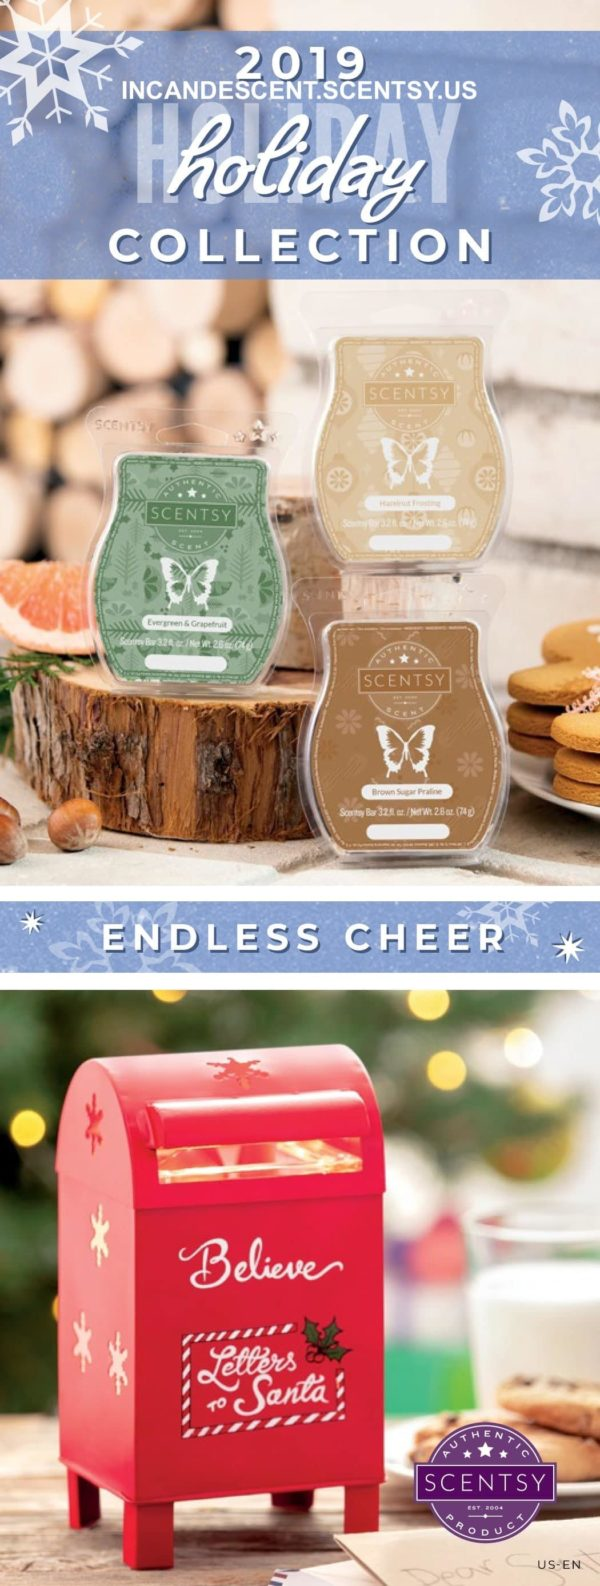 SCENTSY HOLIDAY 2019 COLLETION COVER   FROSTED FLANNEL MINI SCENTSY WARMER   BUFFALO CHECK   Shop Scentsy   Incandescent.Scentsy.us